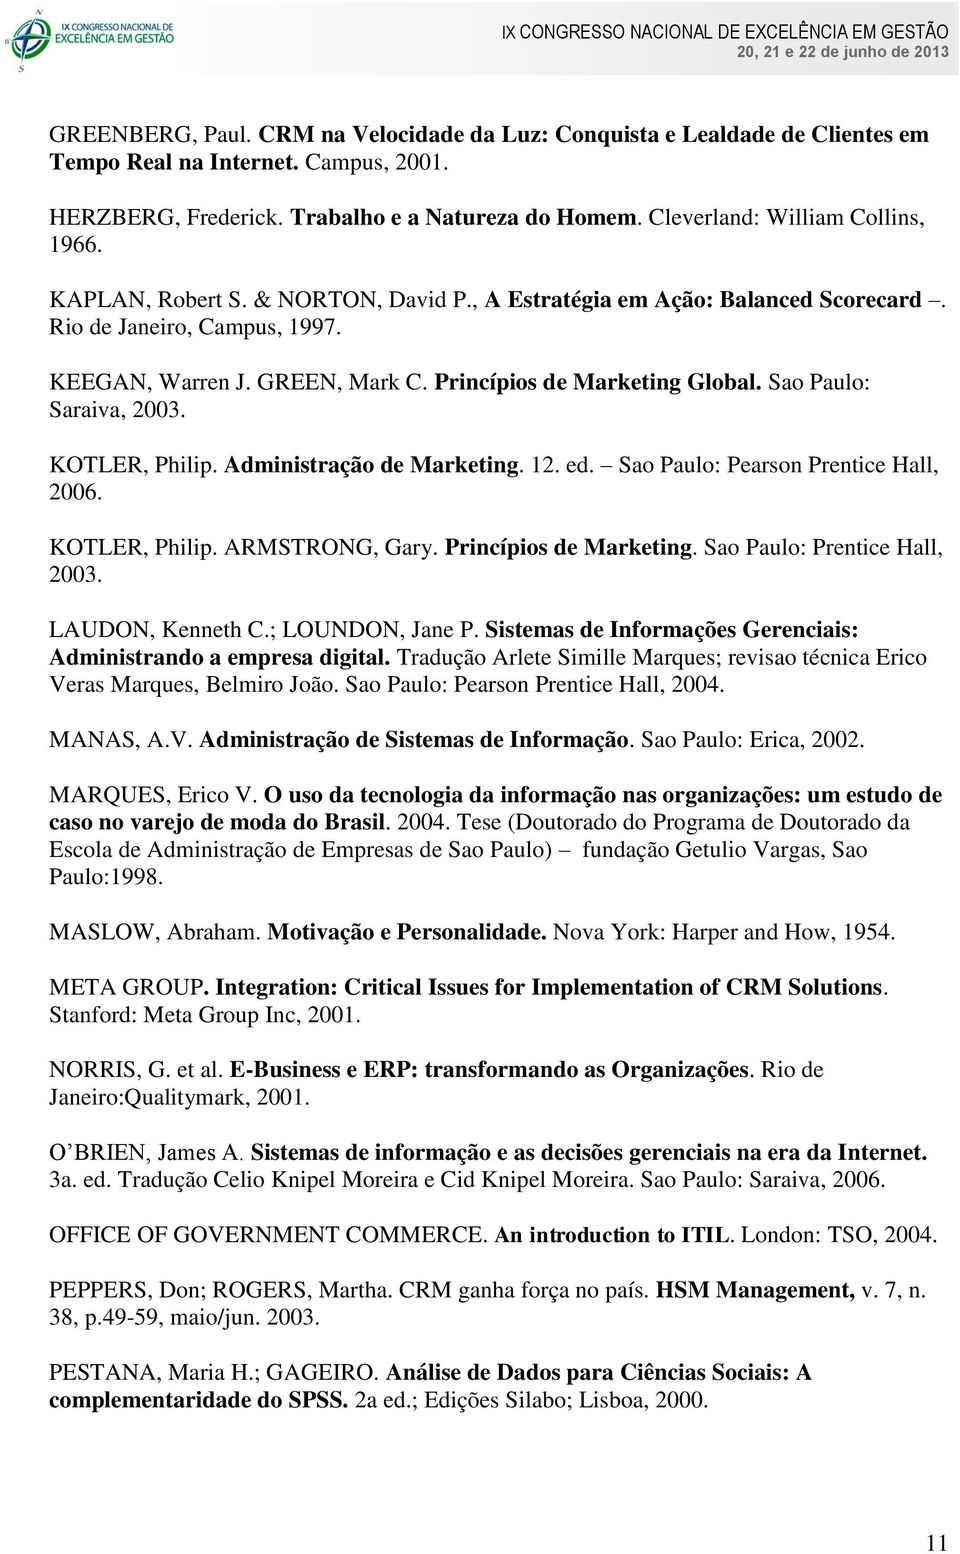 Princípios de Marketing Global. Sao Paulo: Saraiva, 2003. KOTLER, Philip. Administração de Marketing. 12. ed. Sao Paulo: Pearson Prentice Hall, 2006. KOTLER, Philip. ARMSTRONG, Gary.